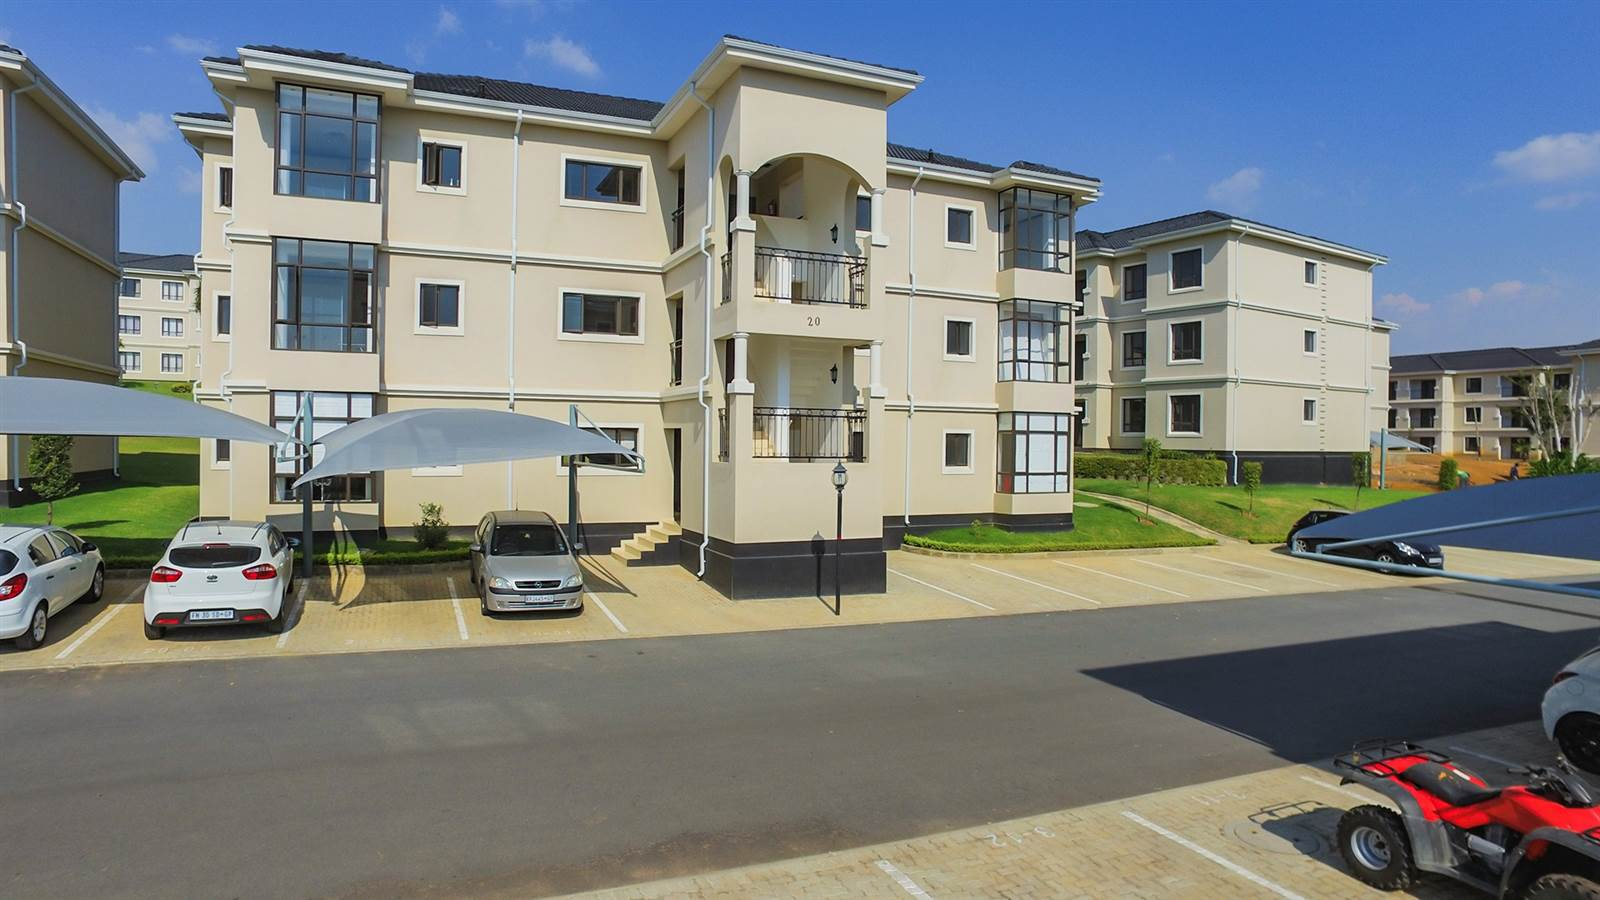 2 Bedroom Apartment for sale in Fourways ENT0040134 : photo#2